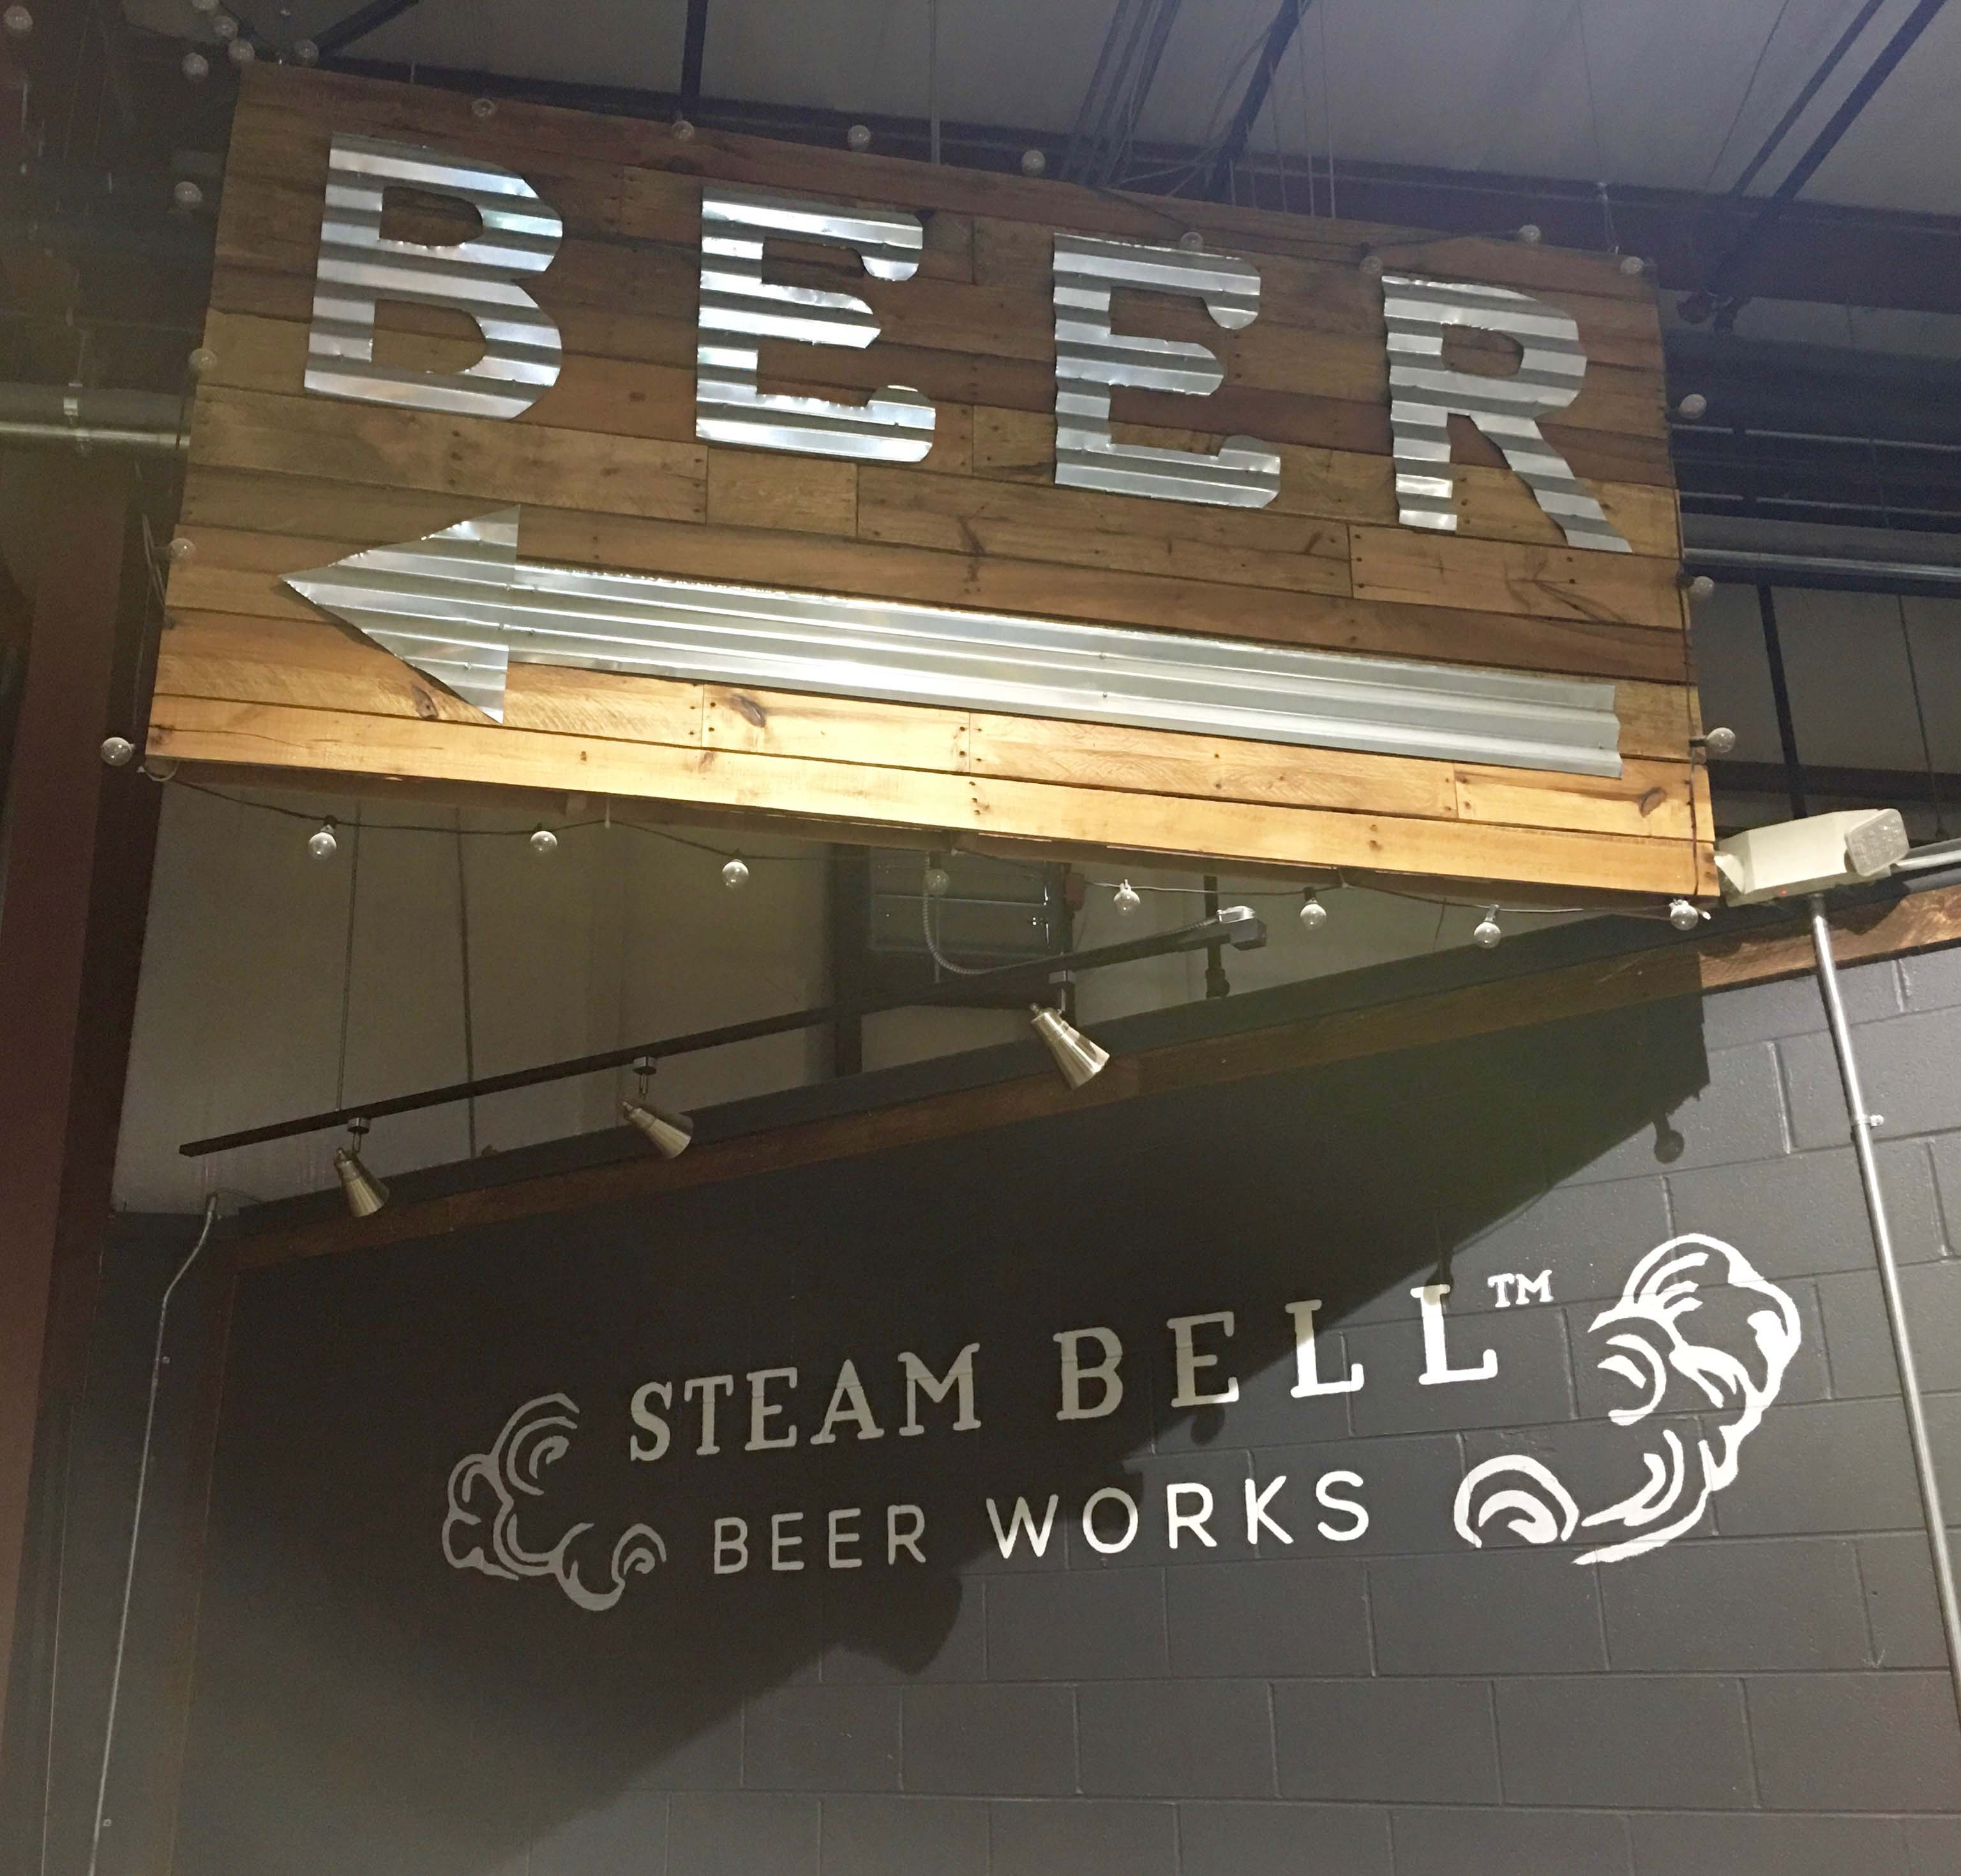 Steam Bell Beer Works, Midlothian craft brewery